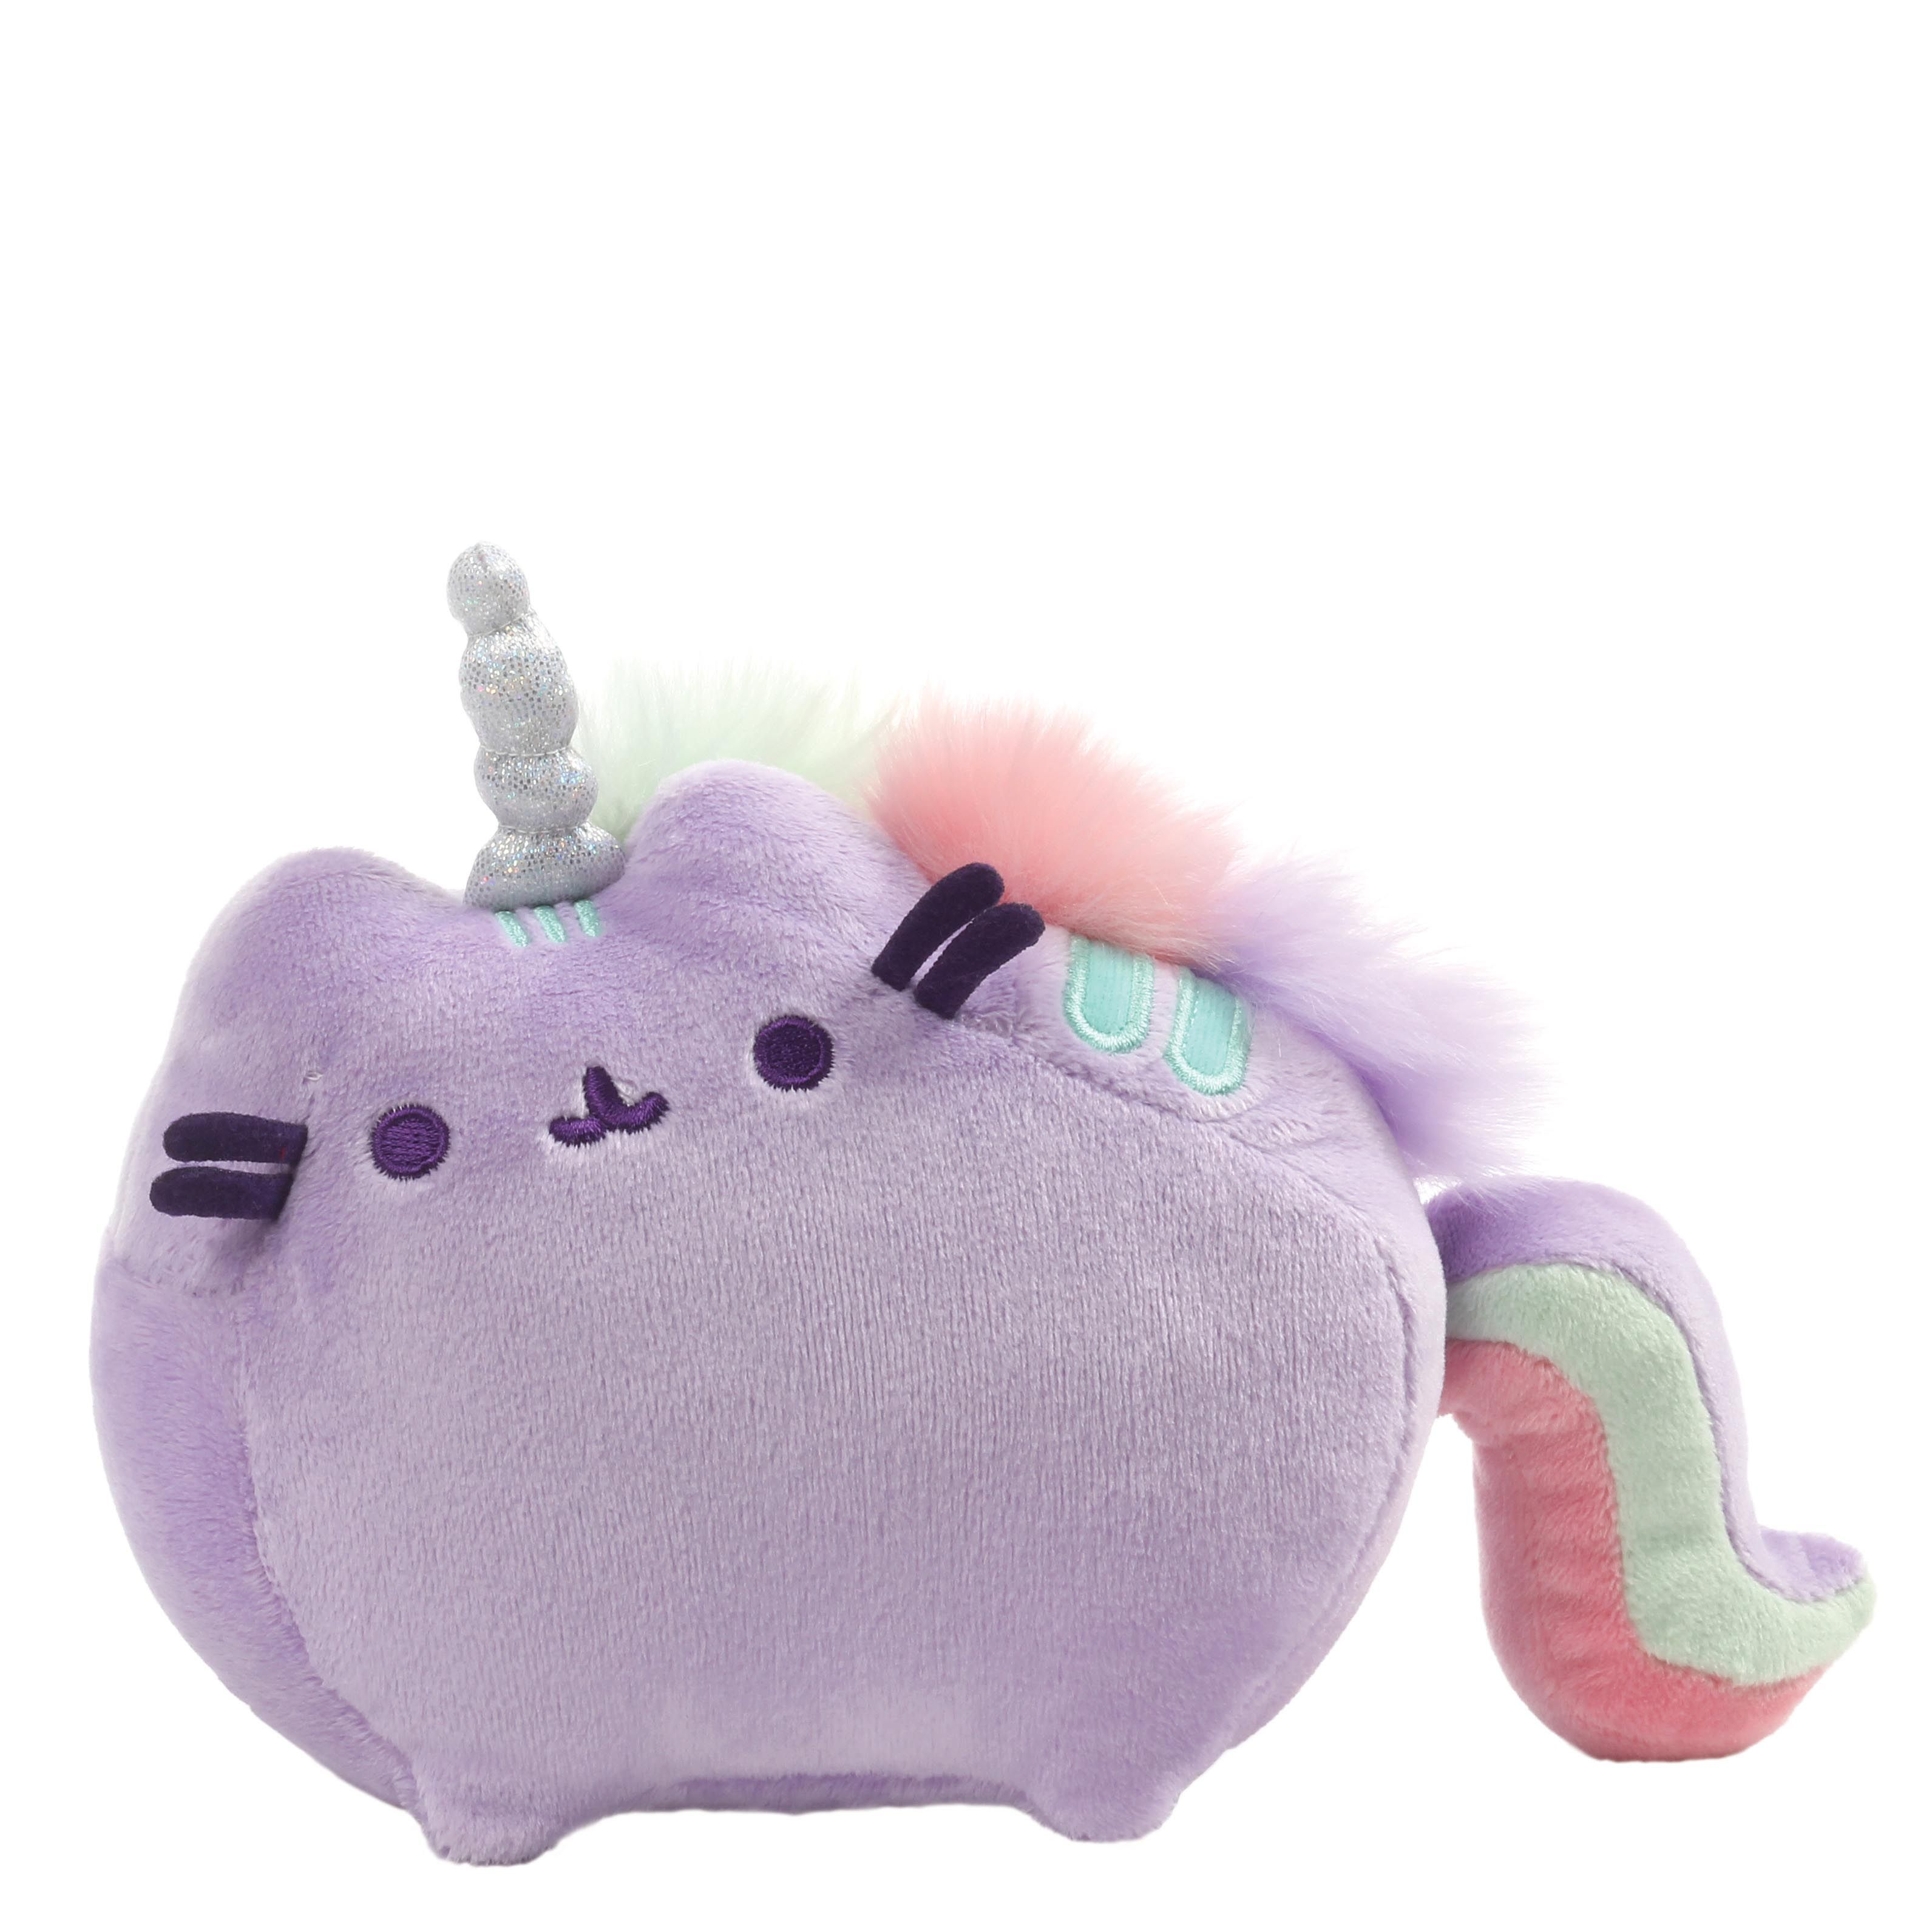 PUSHEENICORN SOUND TOY PURPLE WITH RAINBOW MANE AND TAIL